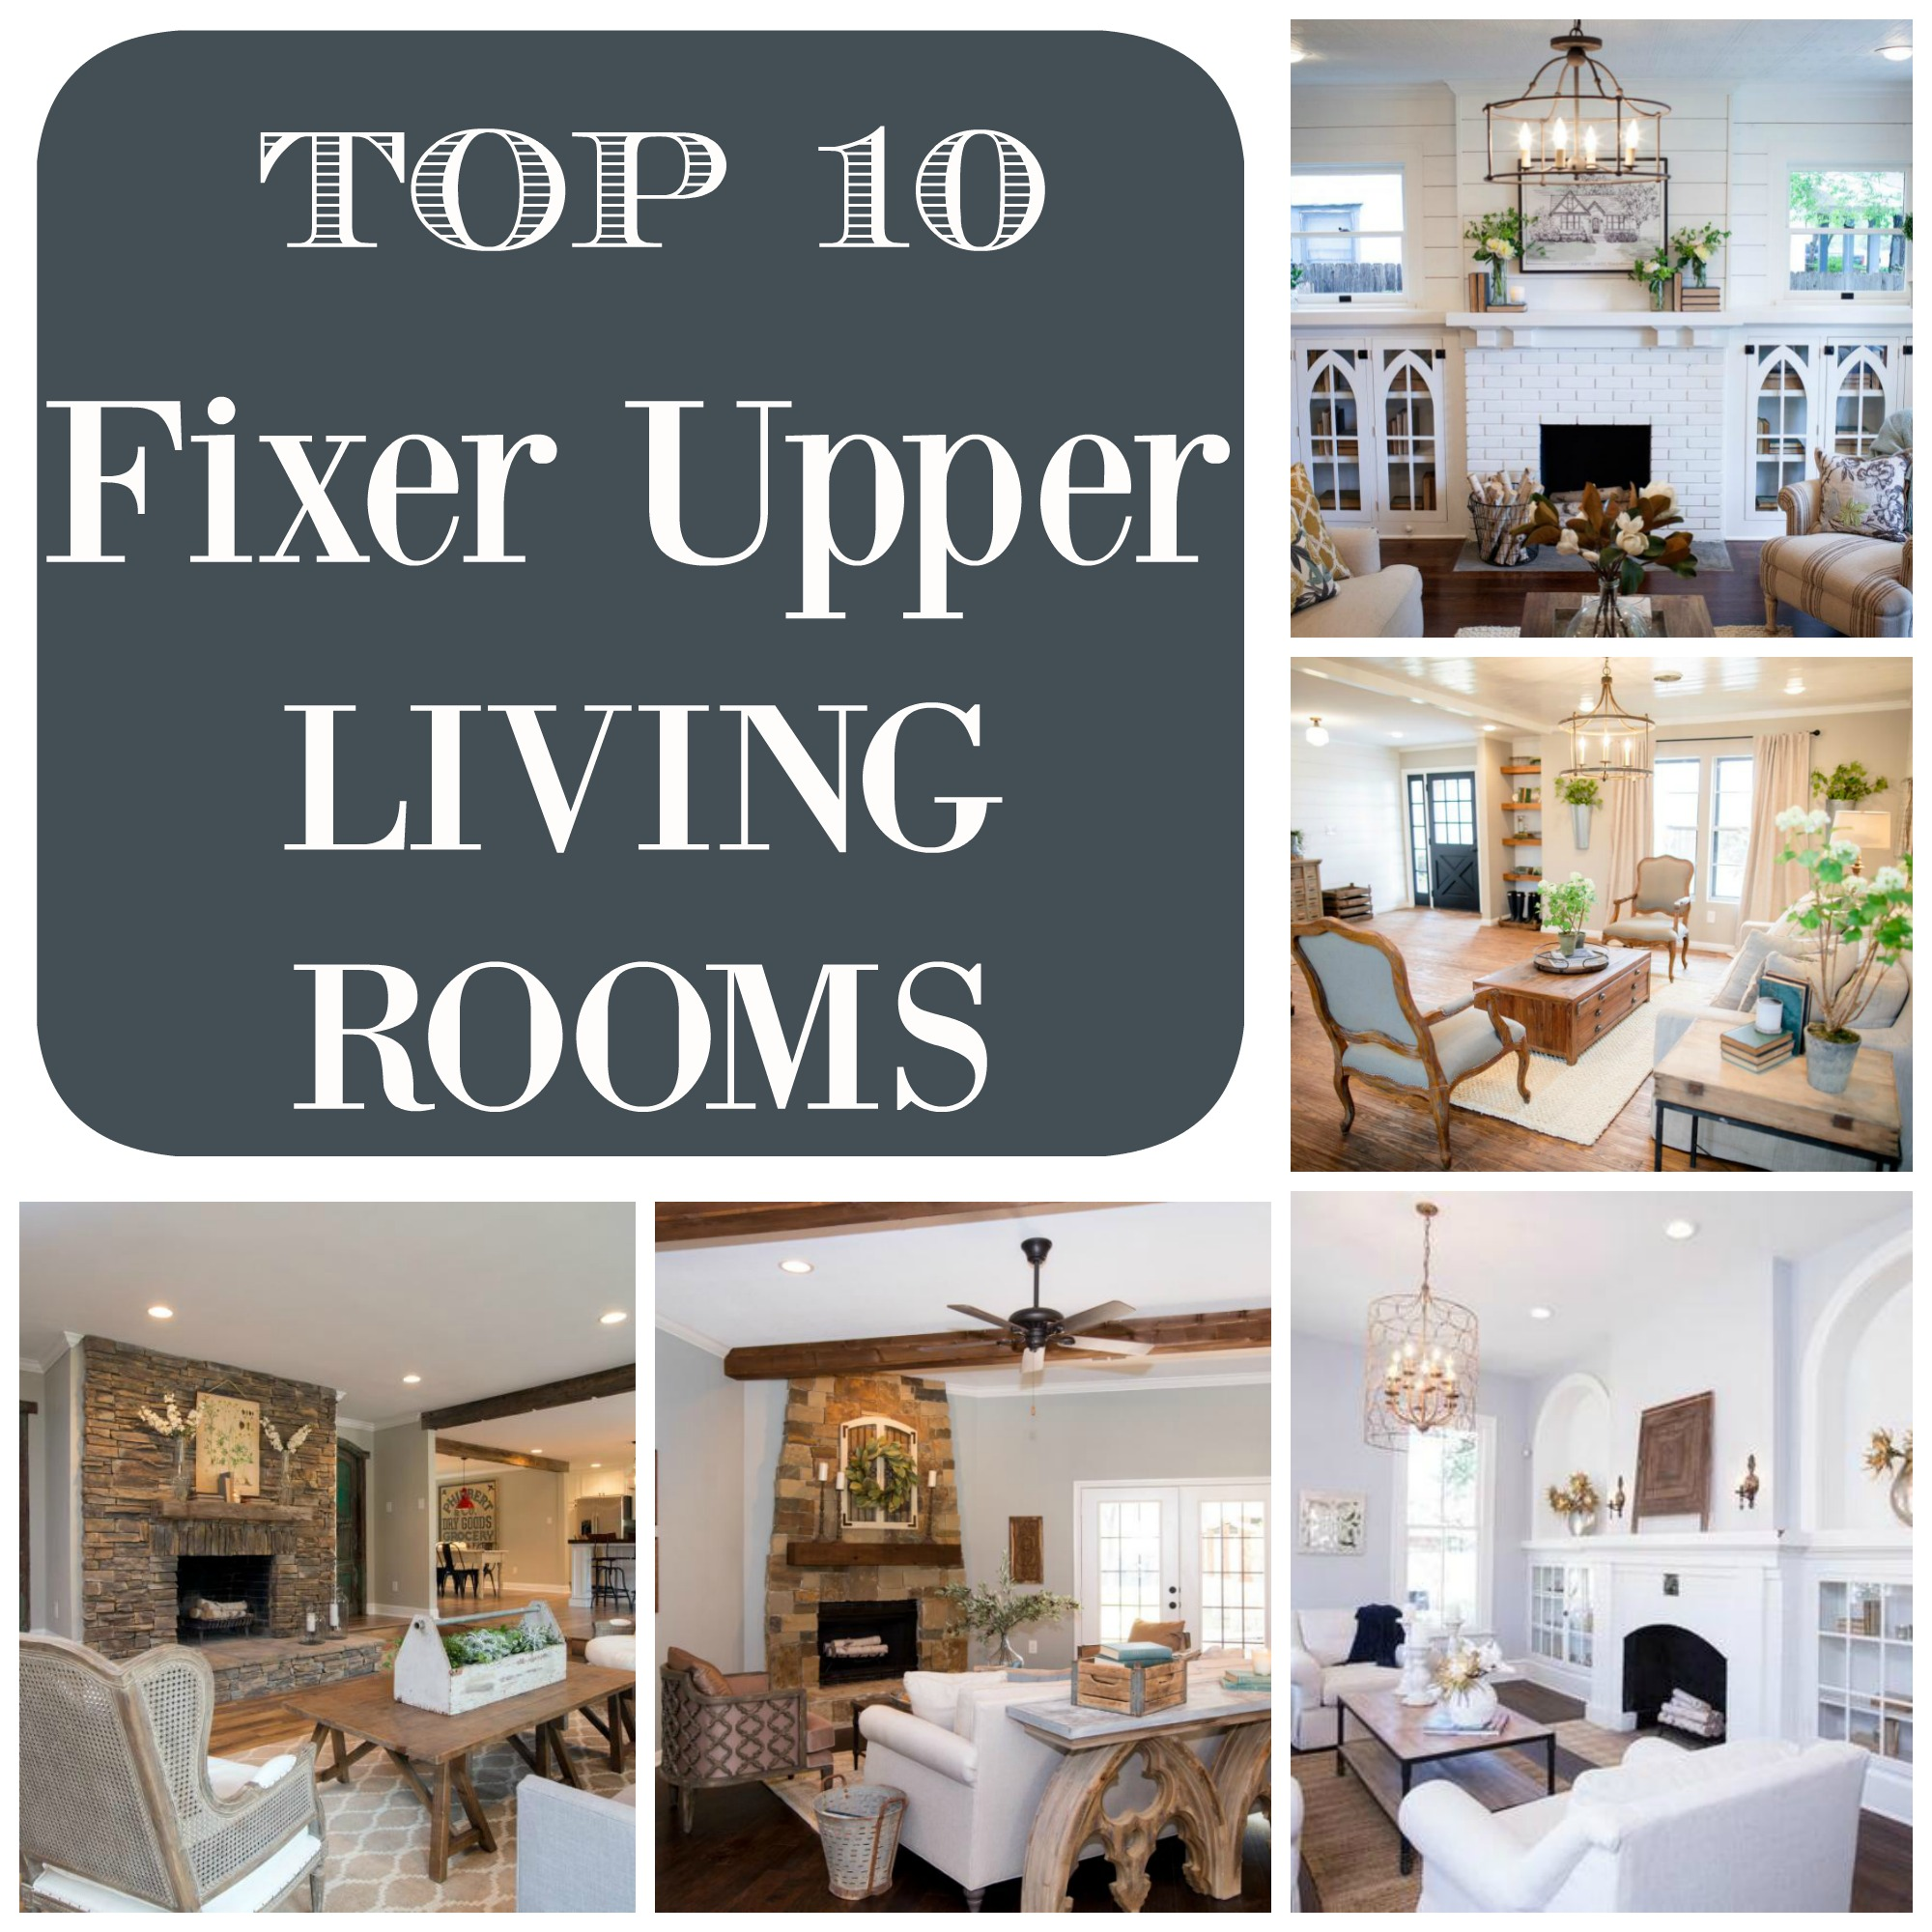 Before And After Merging Two Rooms Has Created A Super: Top 10 Fixer Upper Living Rooms